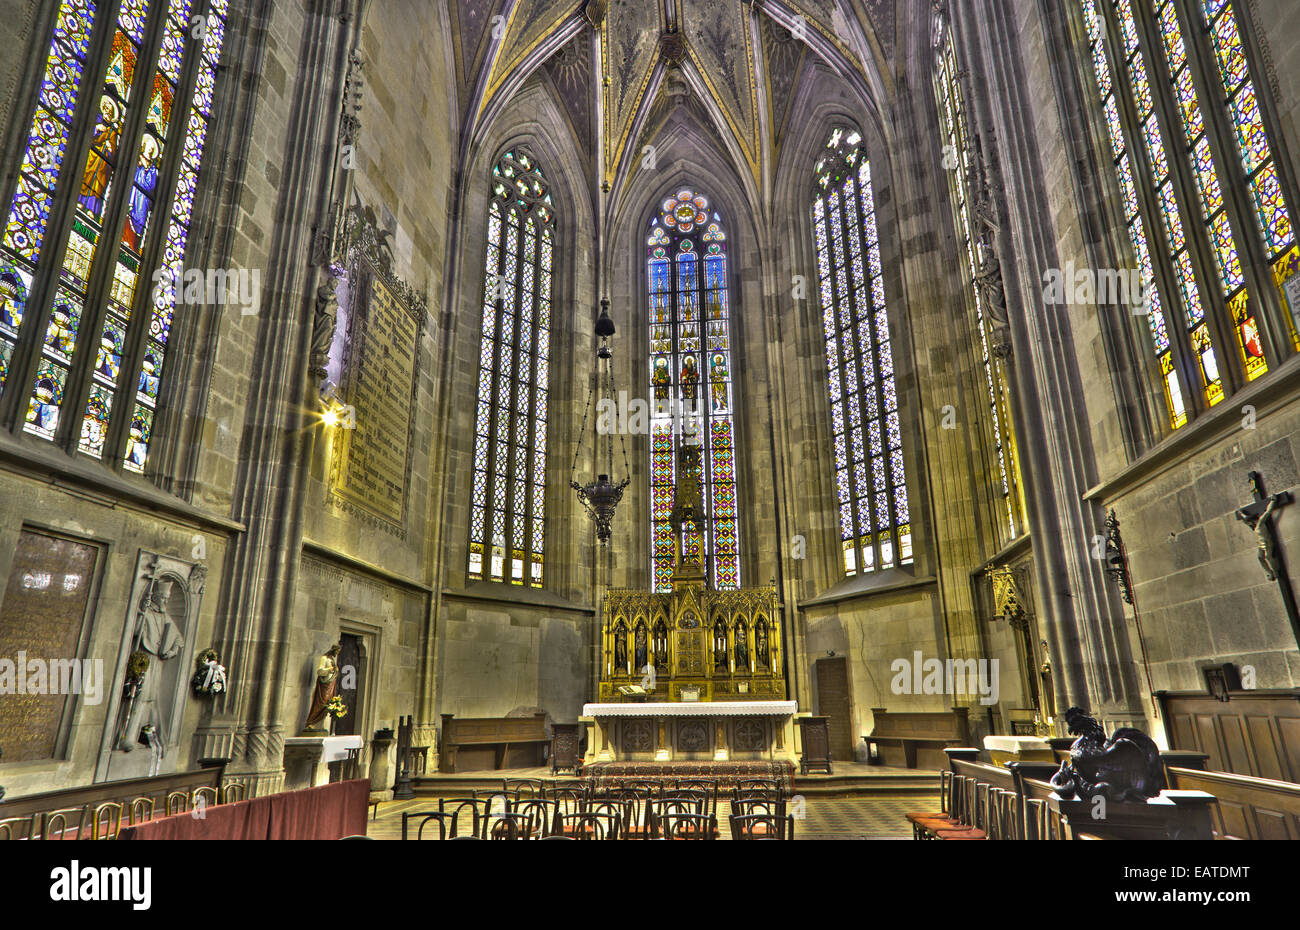 BRATISLAVA, SLOVAKIA - FEBRUARY 11, 2014: The presbytery of st. Martin cathedral from 15. cent. - Stock Image